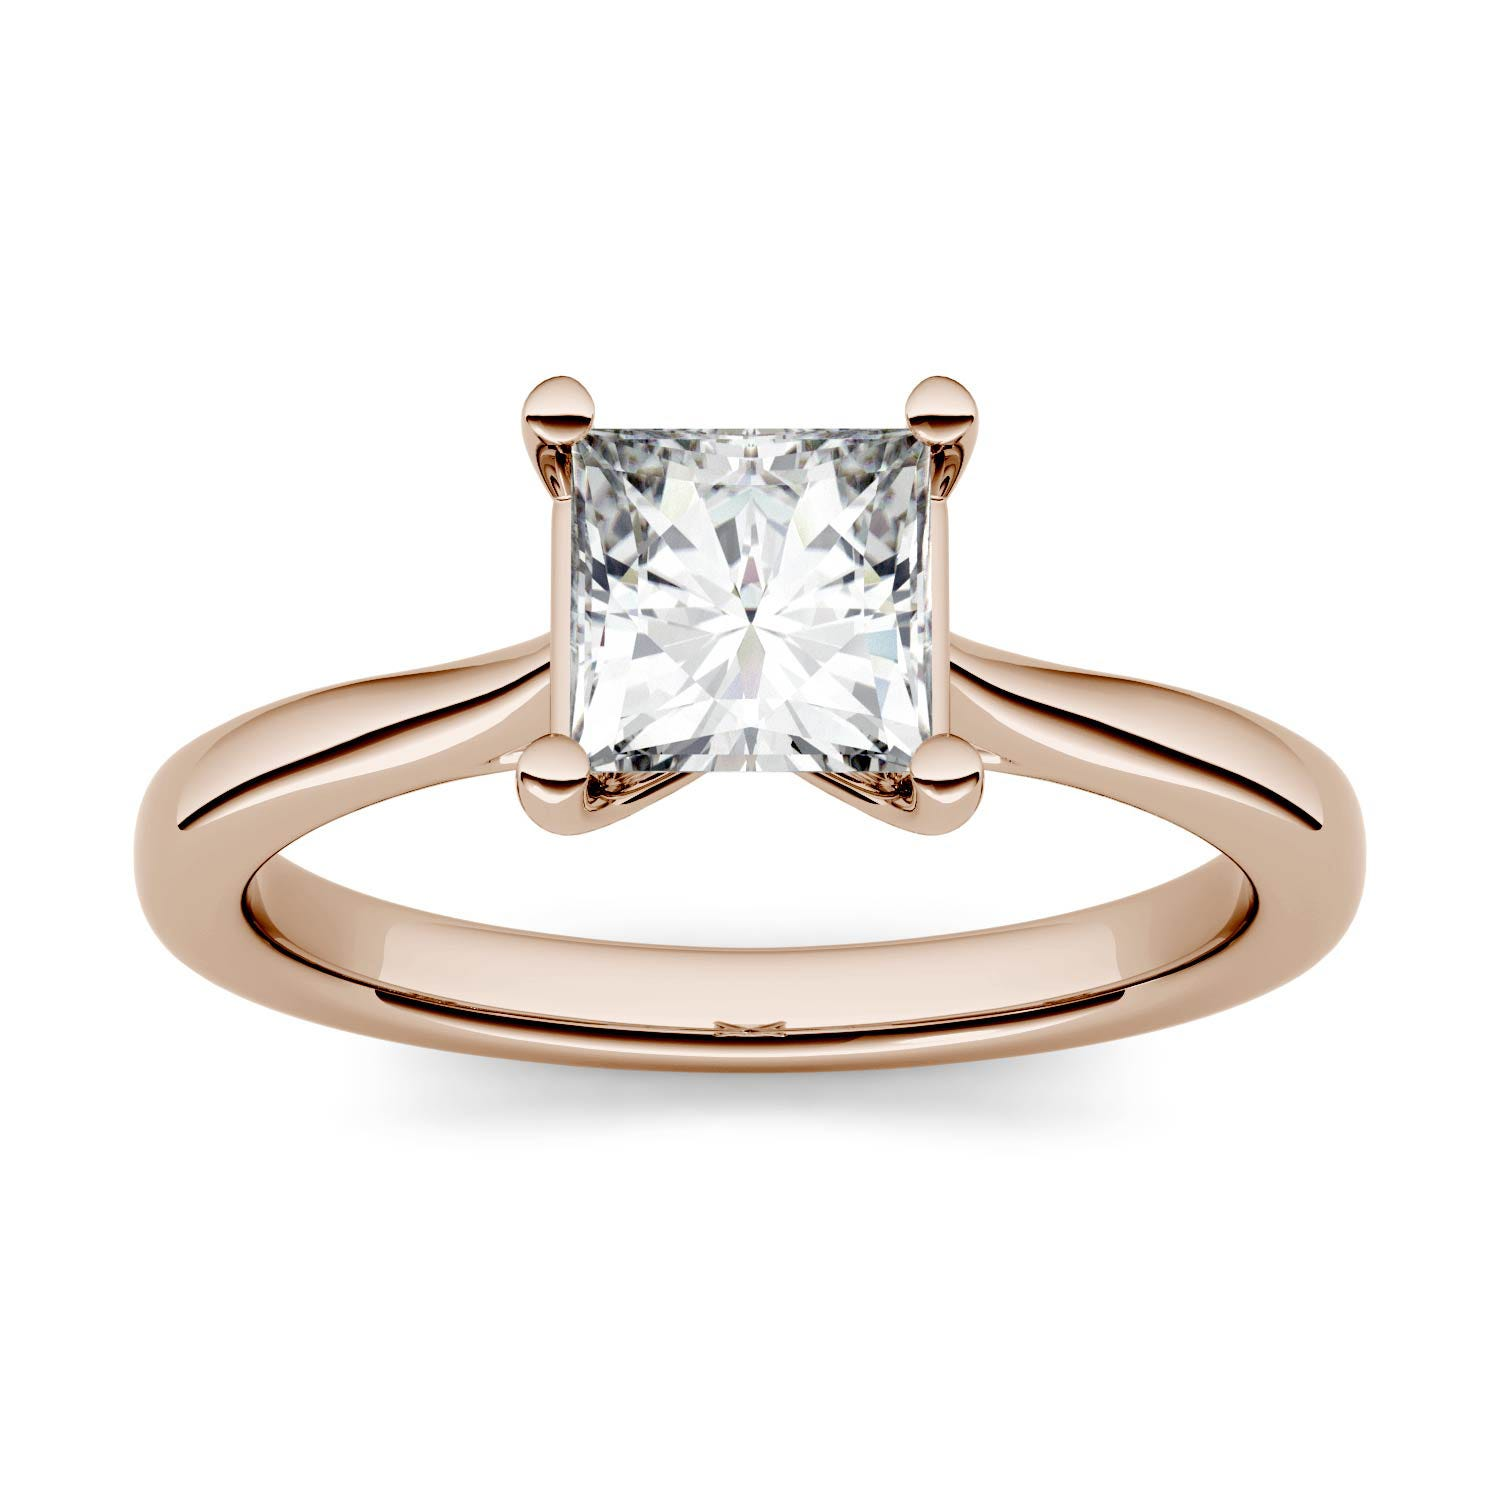 Square 0.91cttw DEW Moissanite Solitaire Engagement Ring in 14K Rose Gold 513511